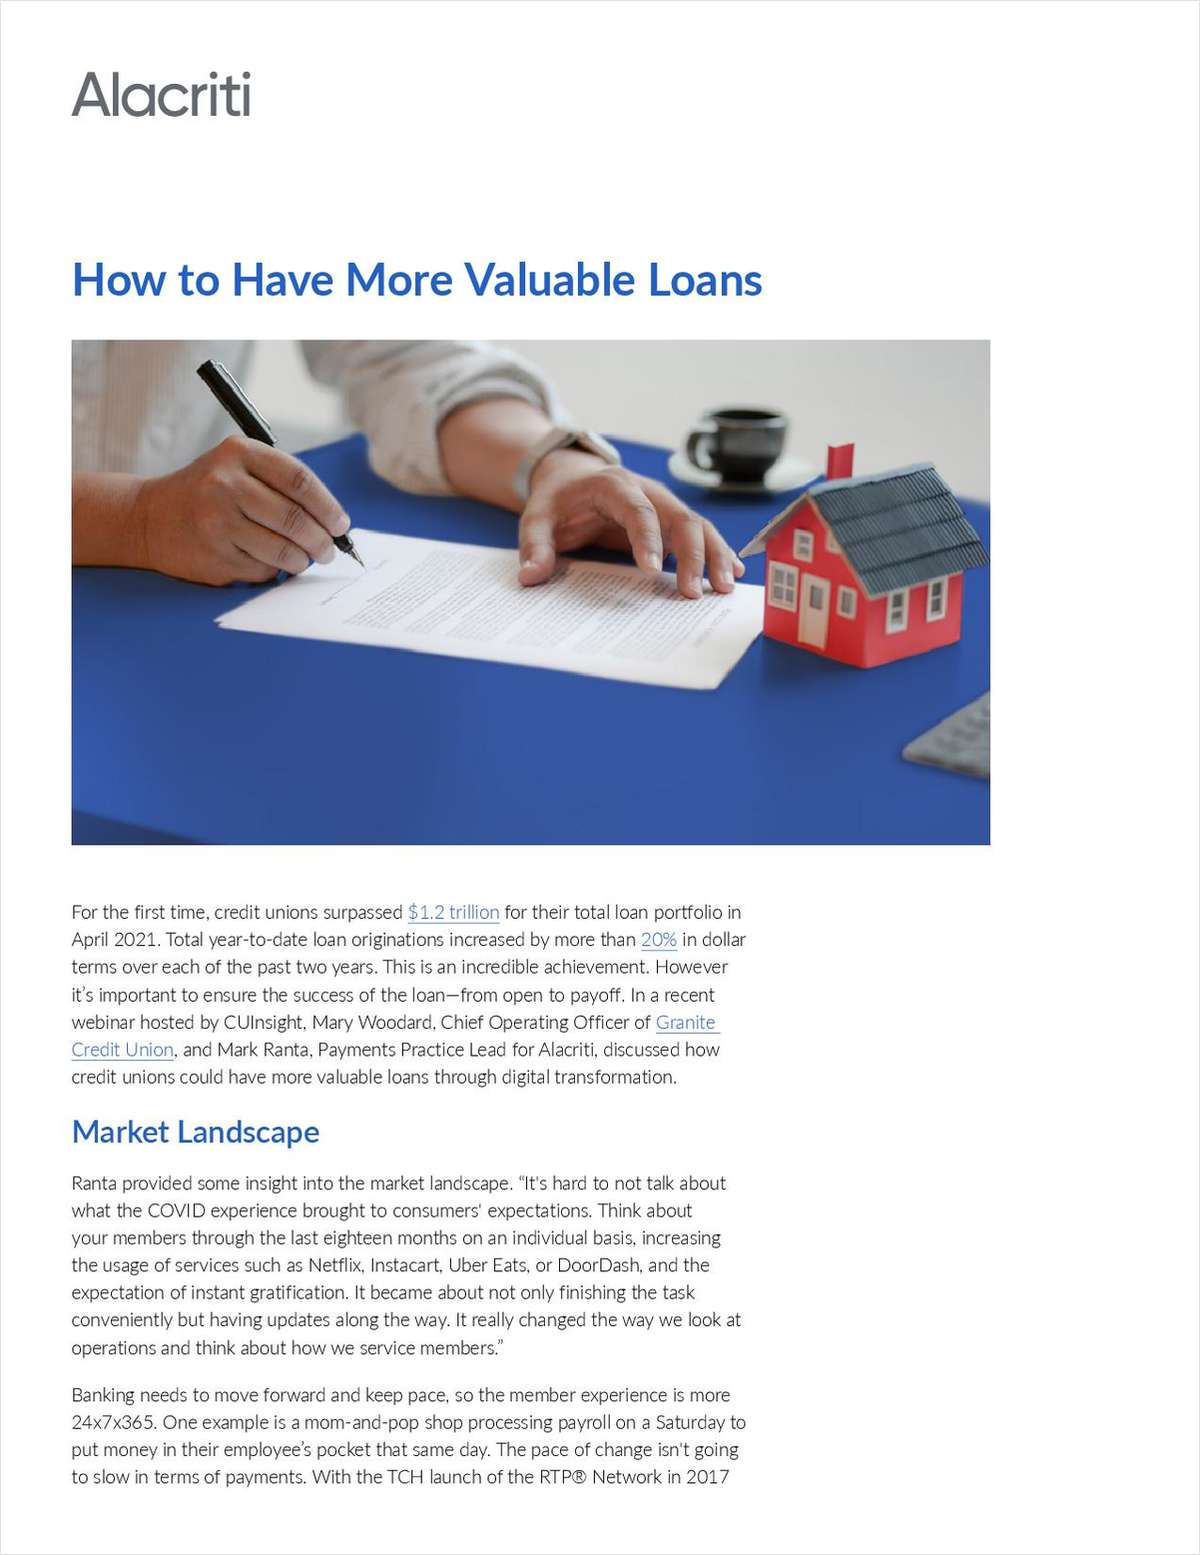 How to Achieve More Valuable Credit Union Loans